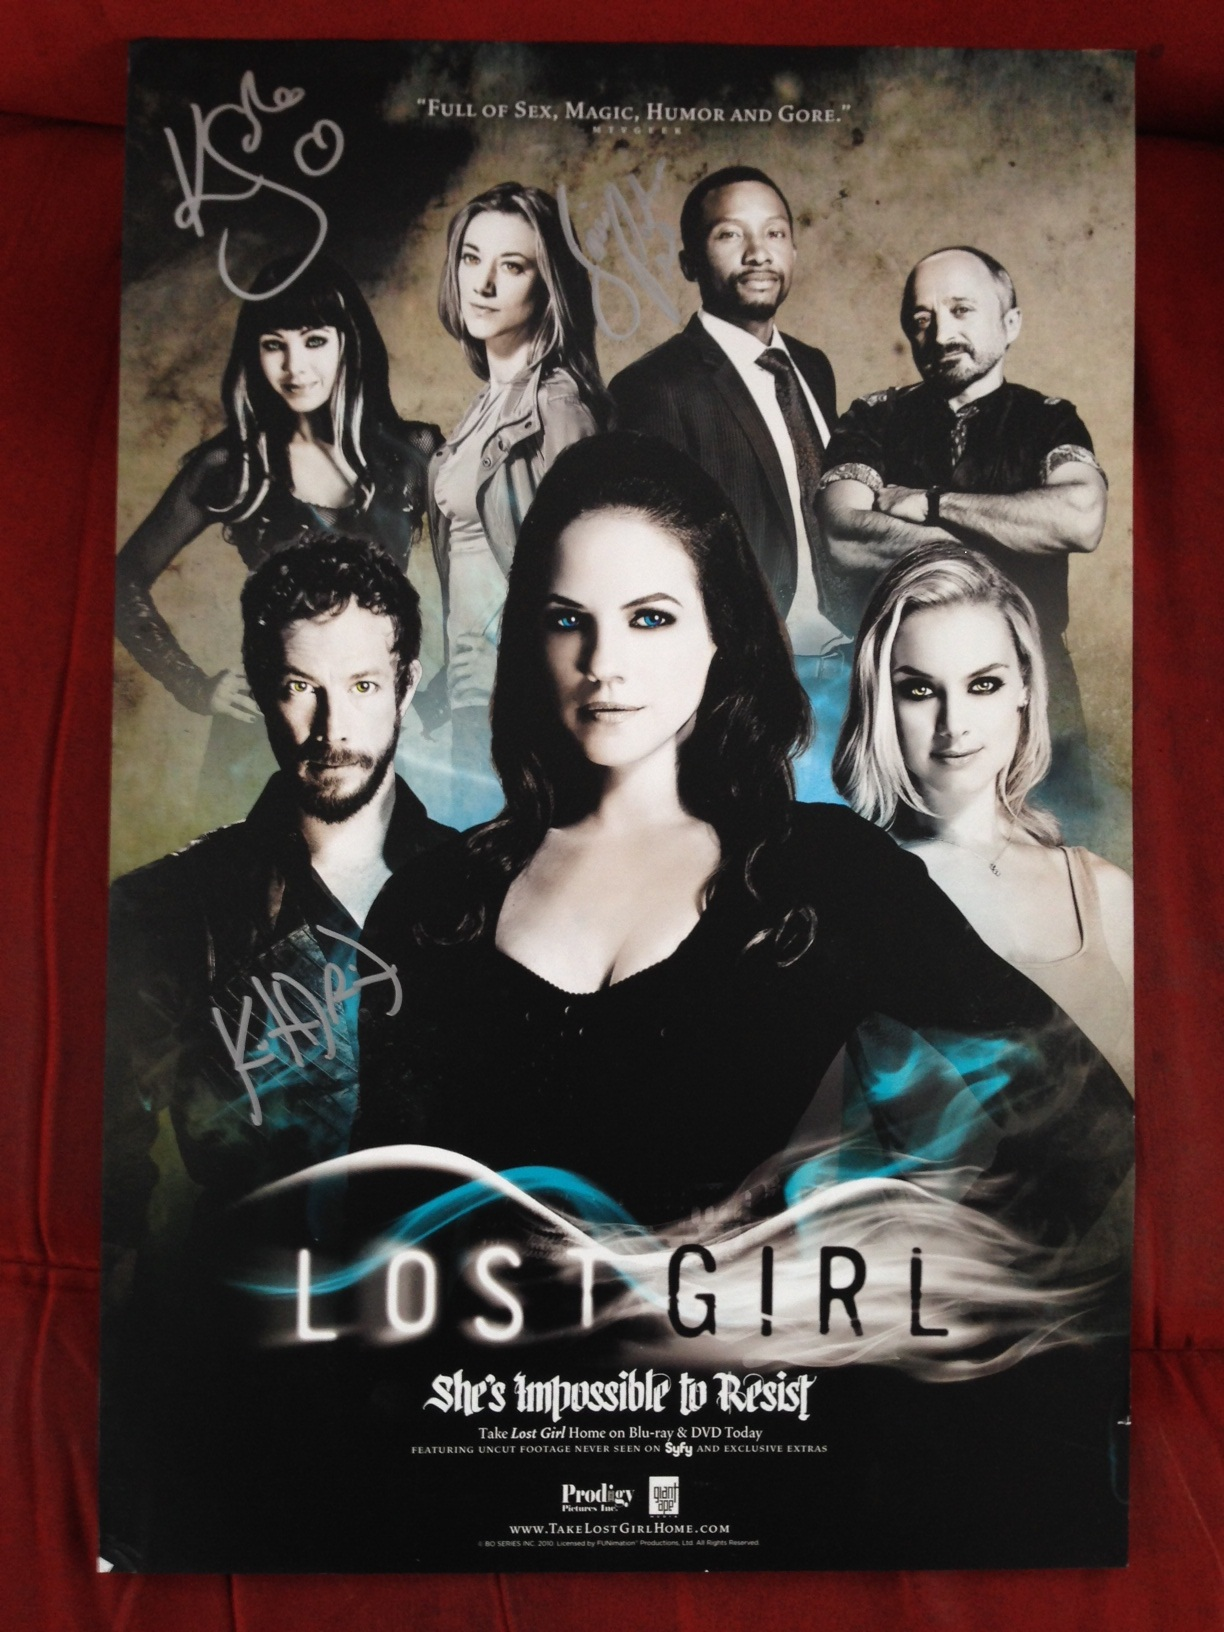 Contest – Win a Lost Girl Signed Poster